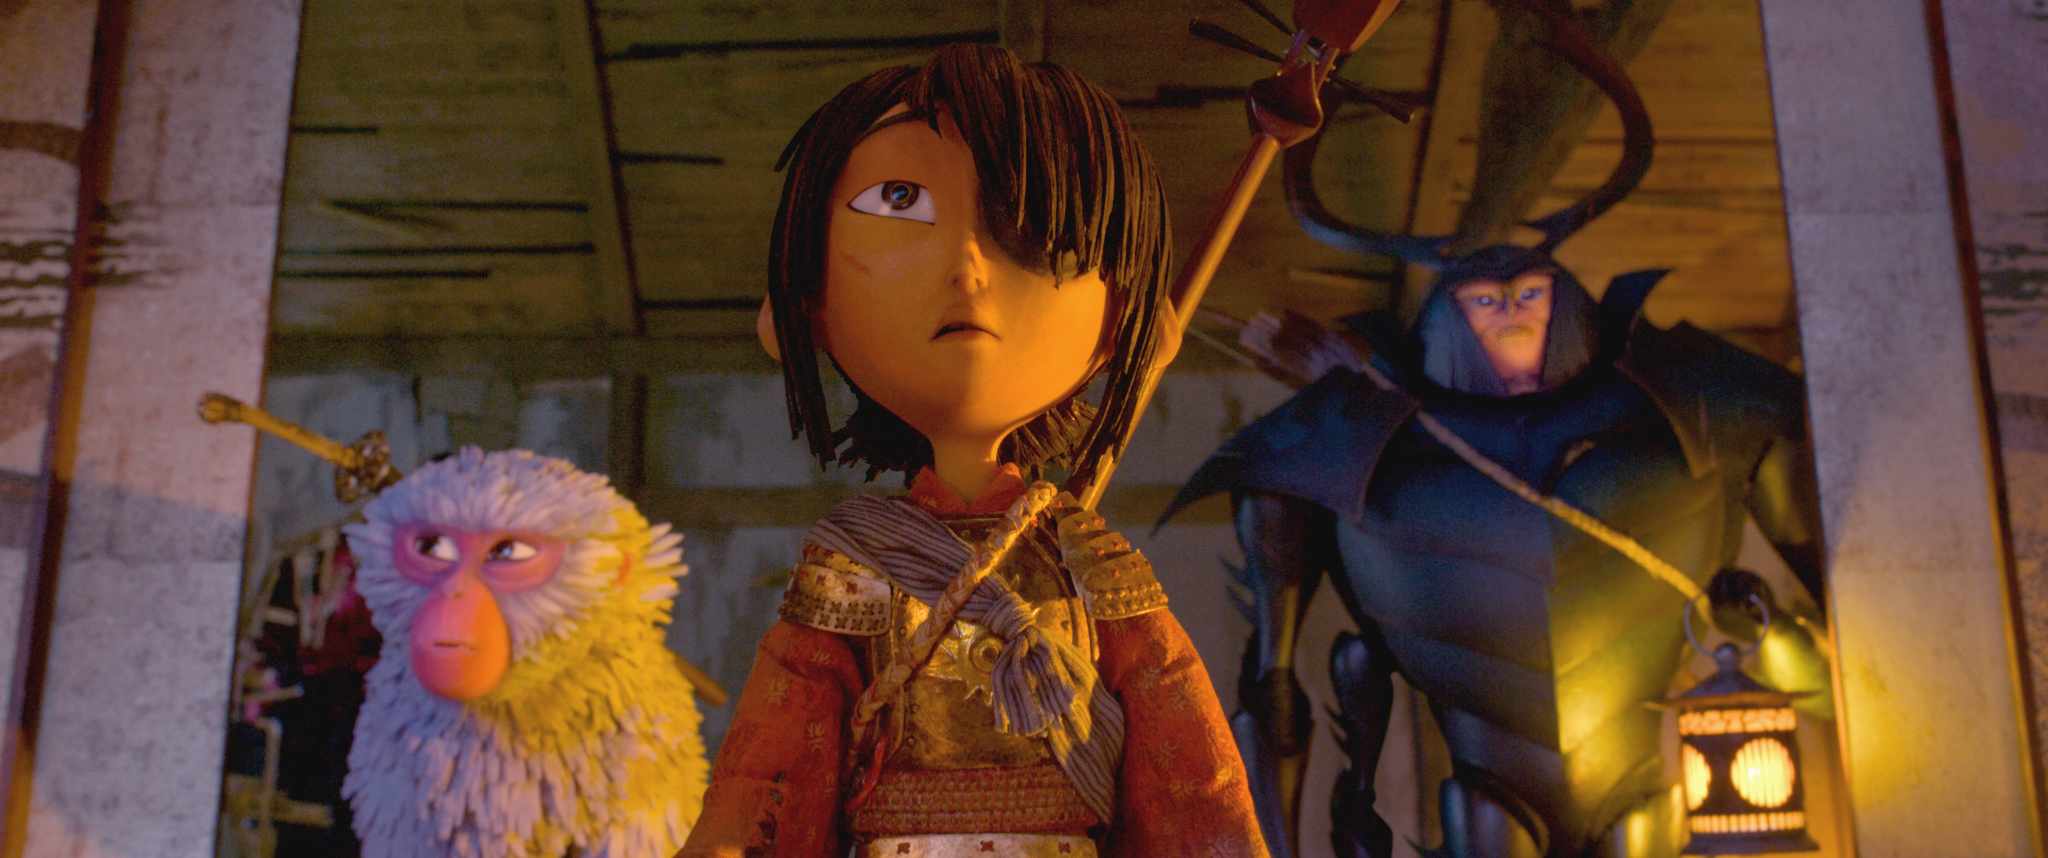 Kubo-and-the-two-strings-movie-review-laika